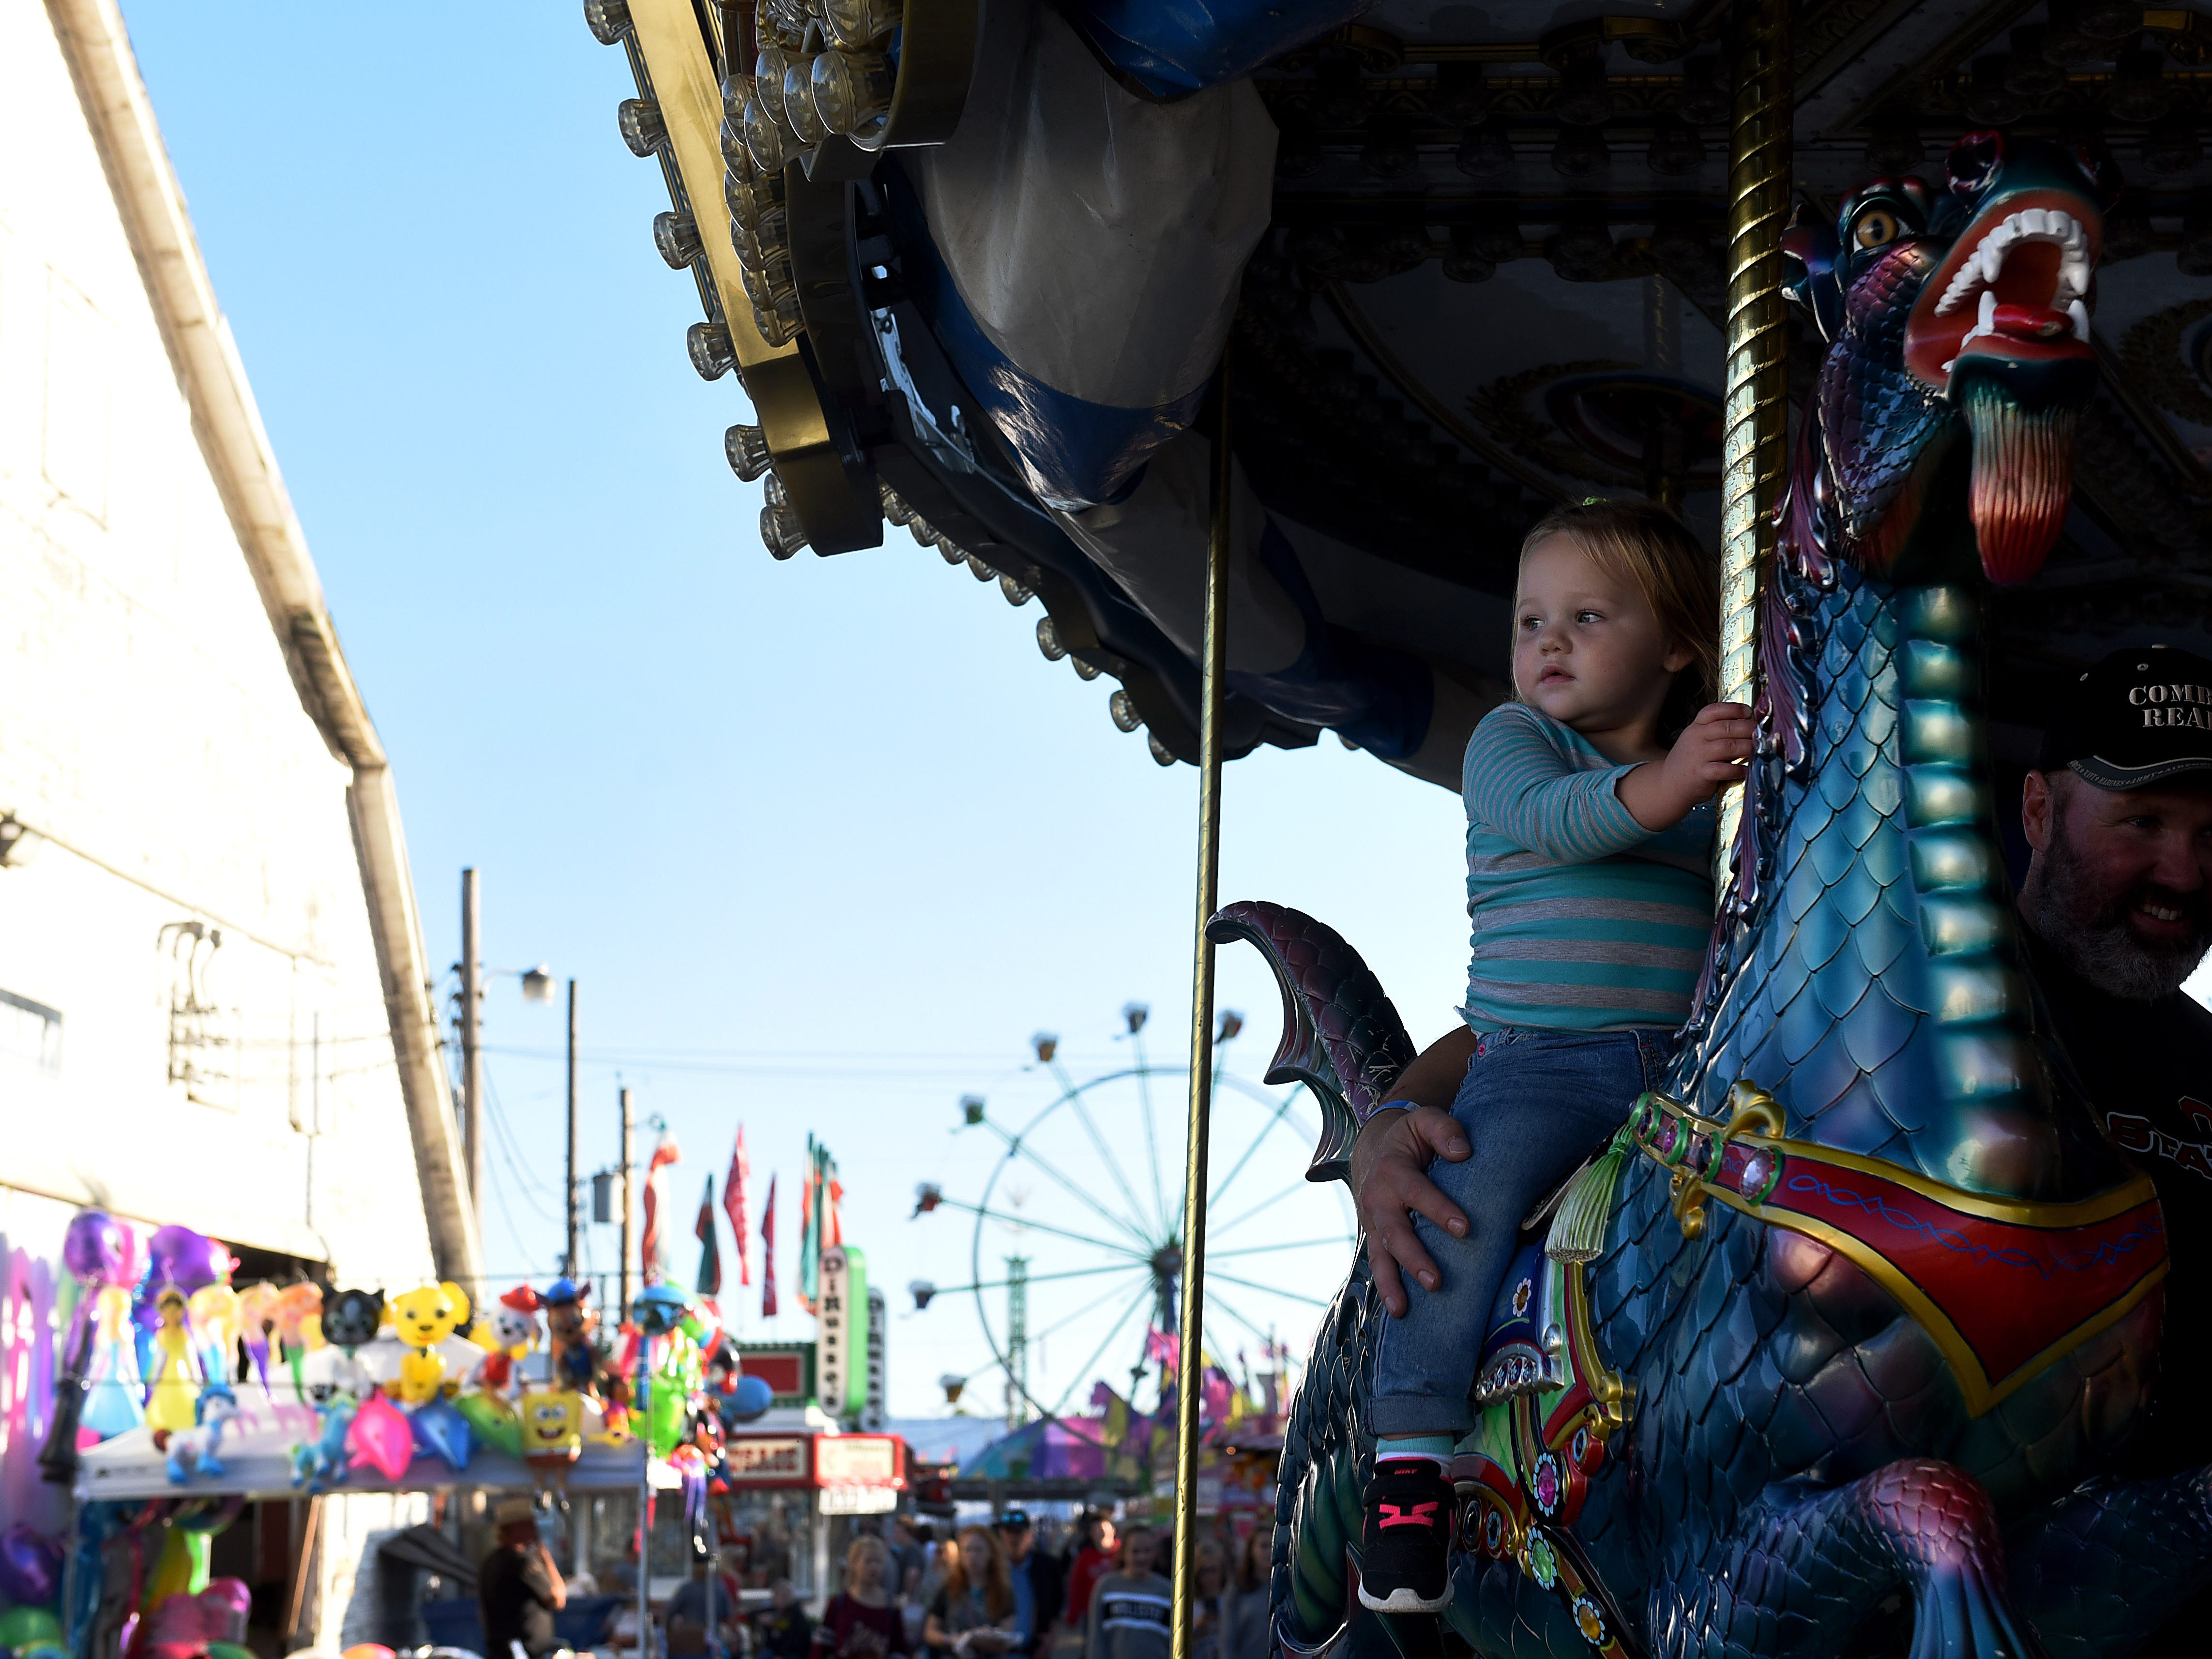 Sophia Lewis rides the carousel with her father, Chris Lewis, at the Coshocton County Fair on Friday, Sept. 28, 2018.